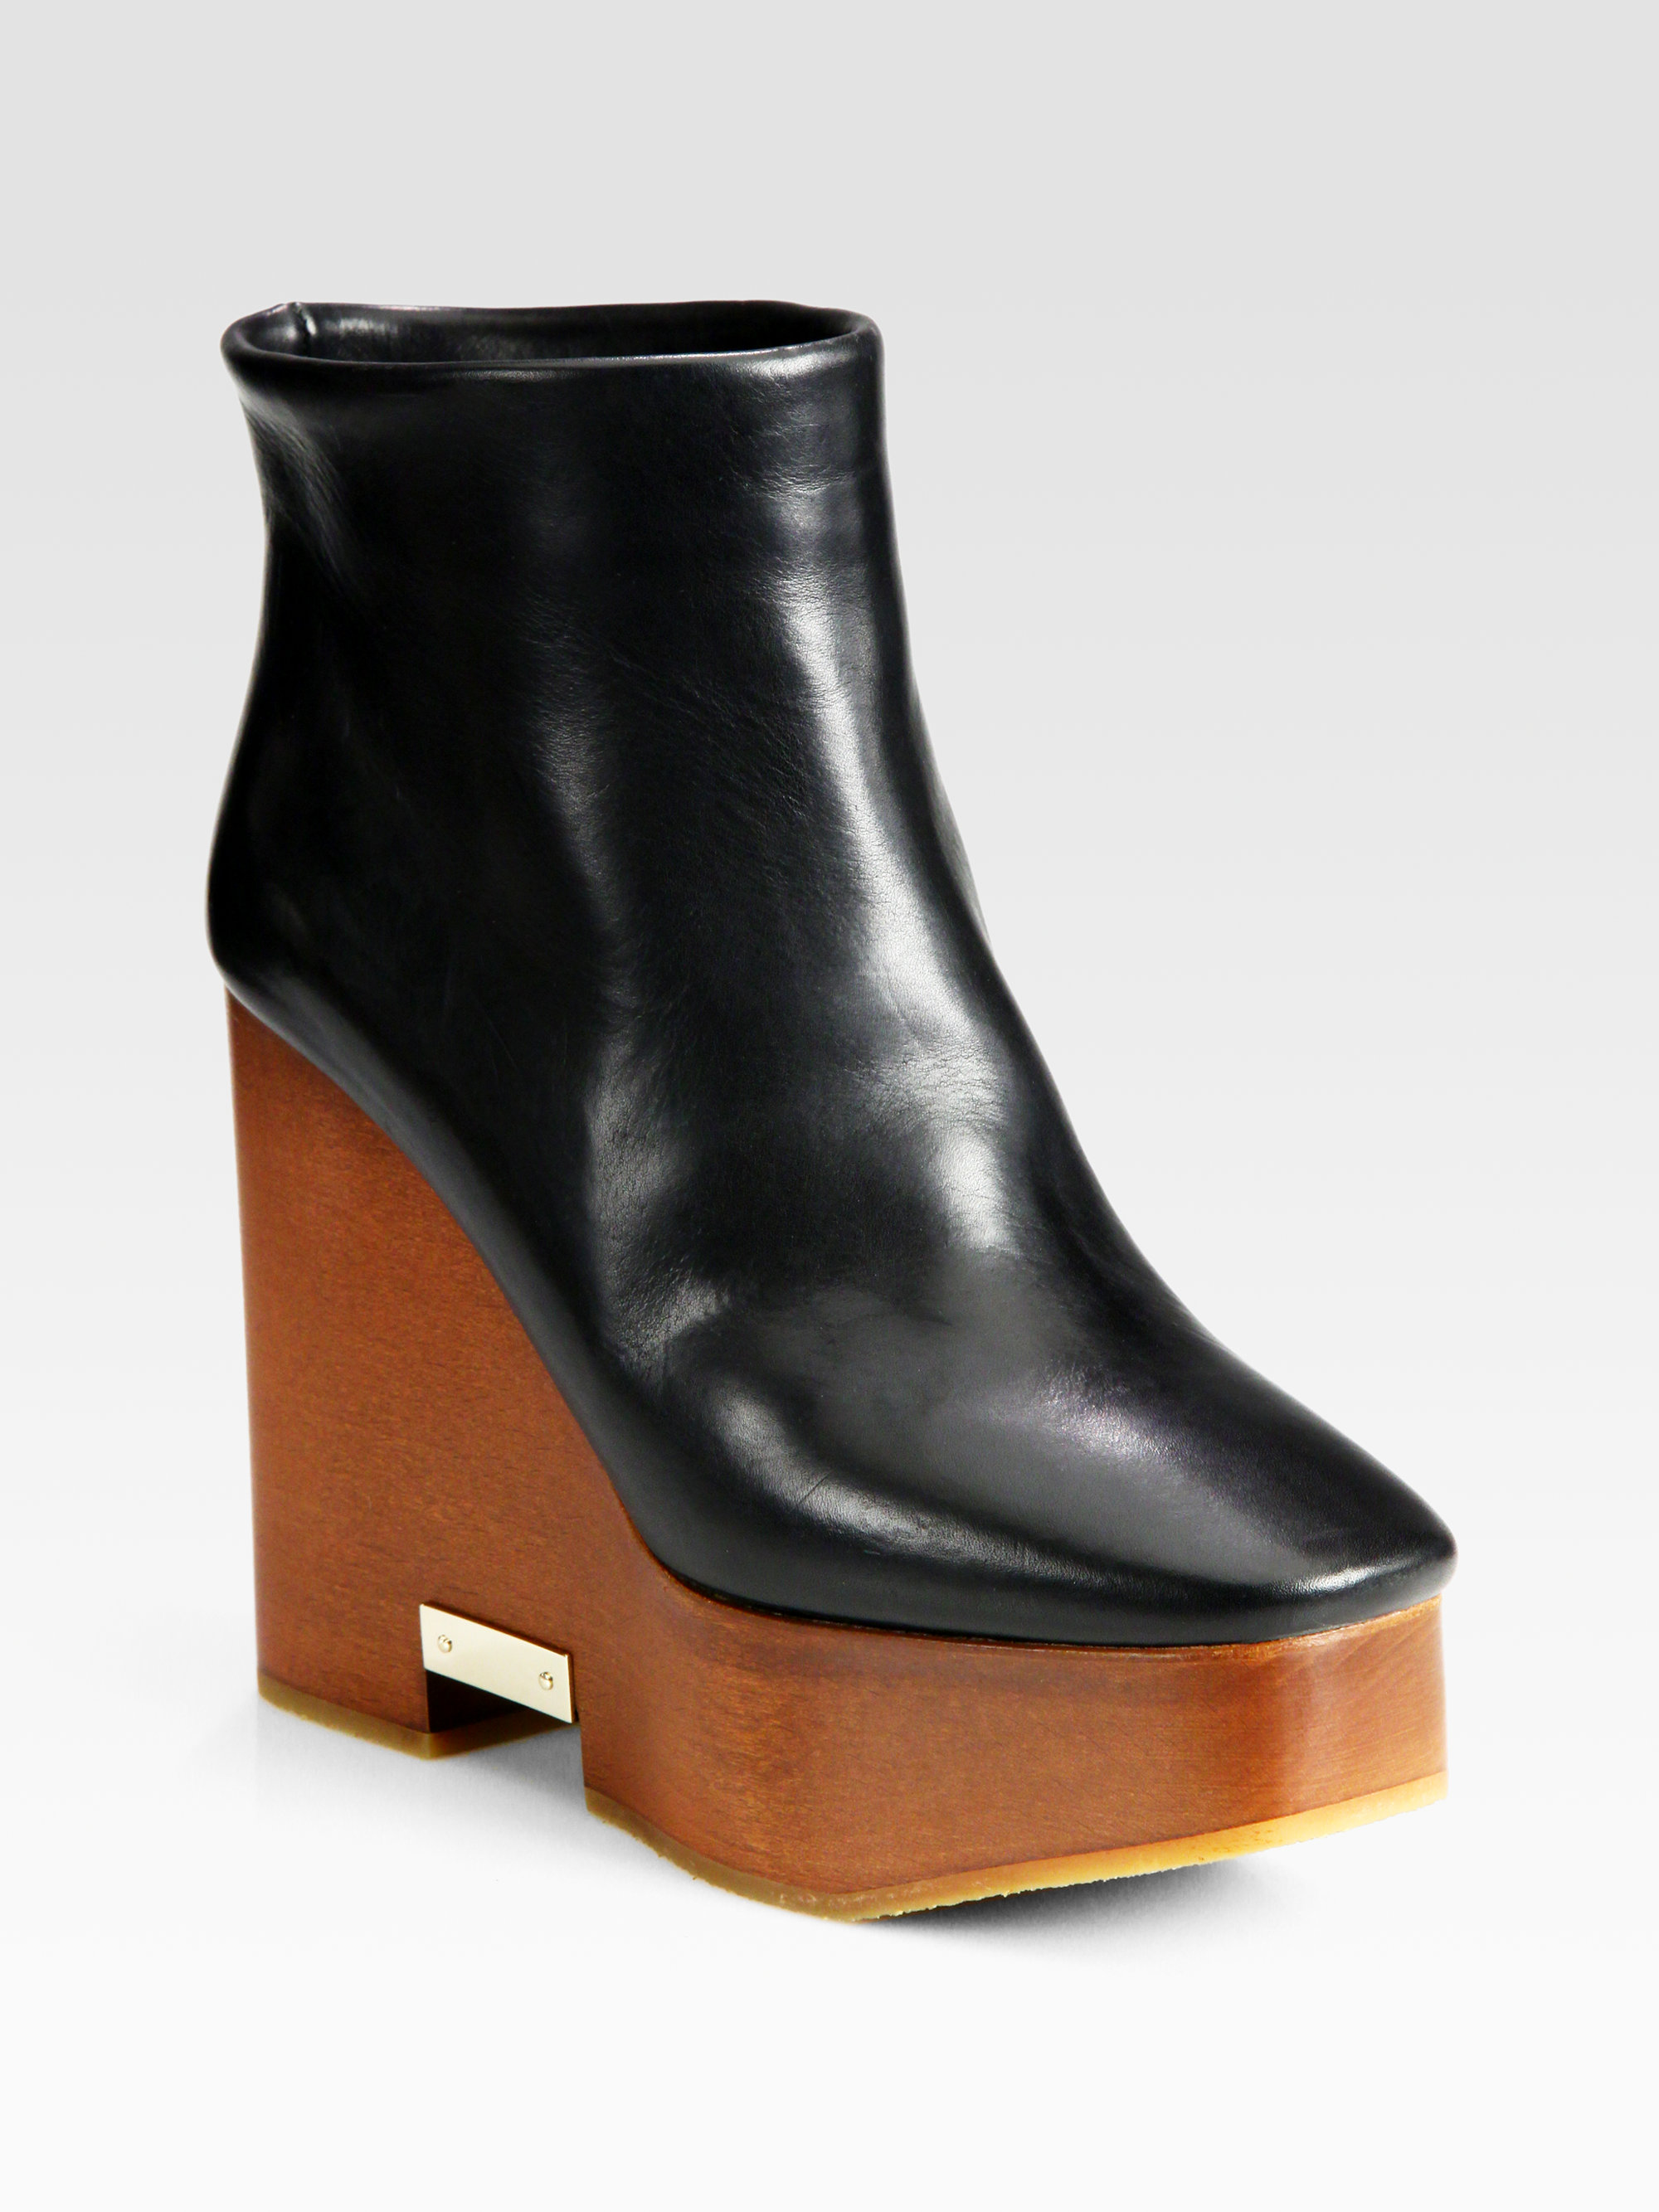 Chloé Patent Leather Wedge Booties cheap latest Bt1reWMf